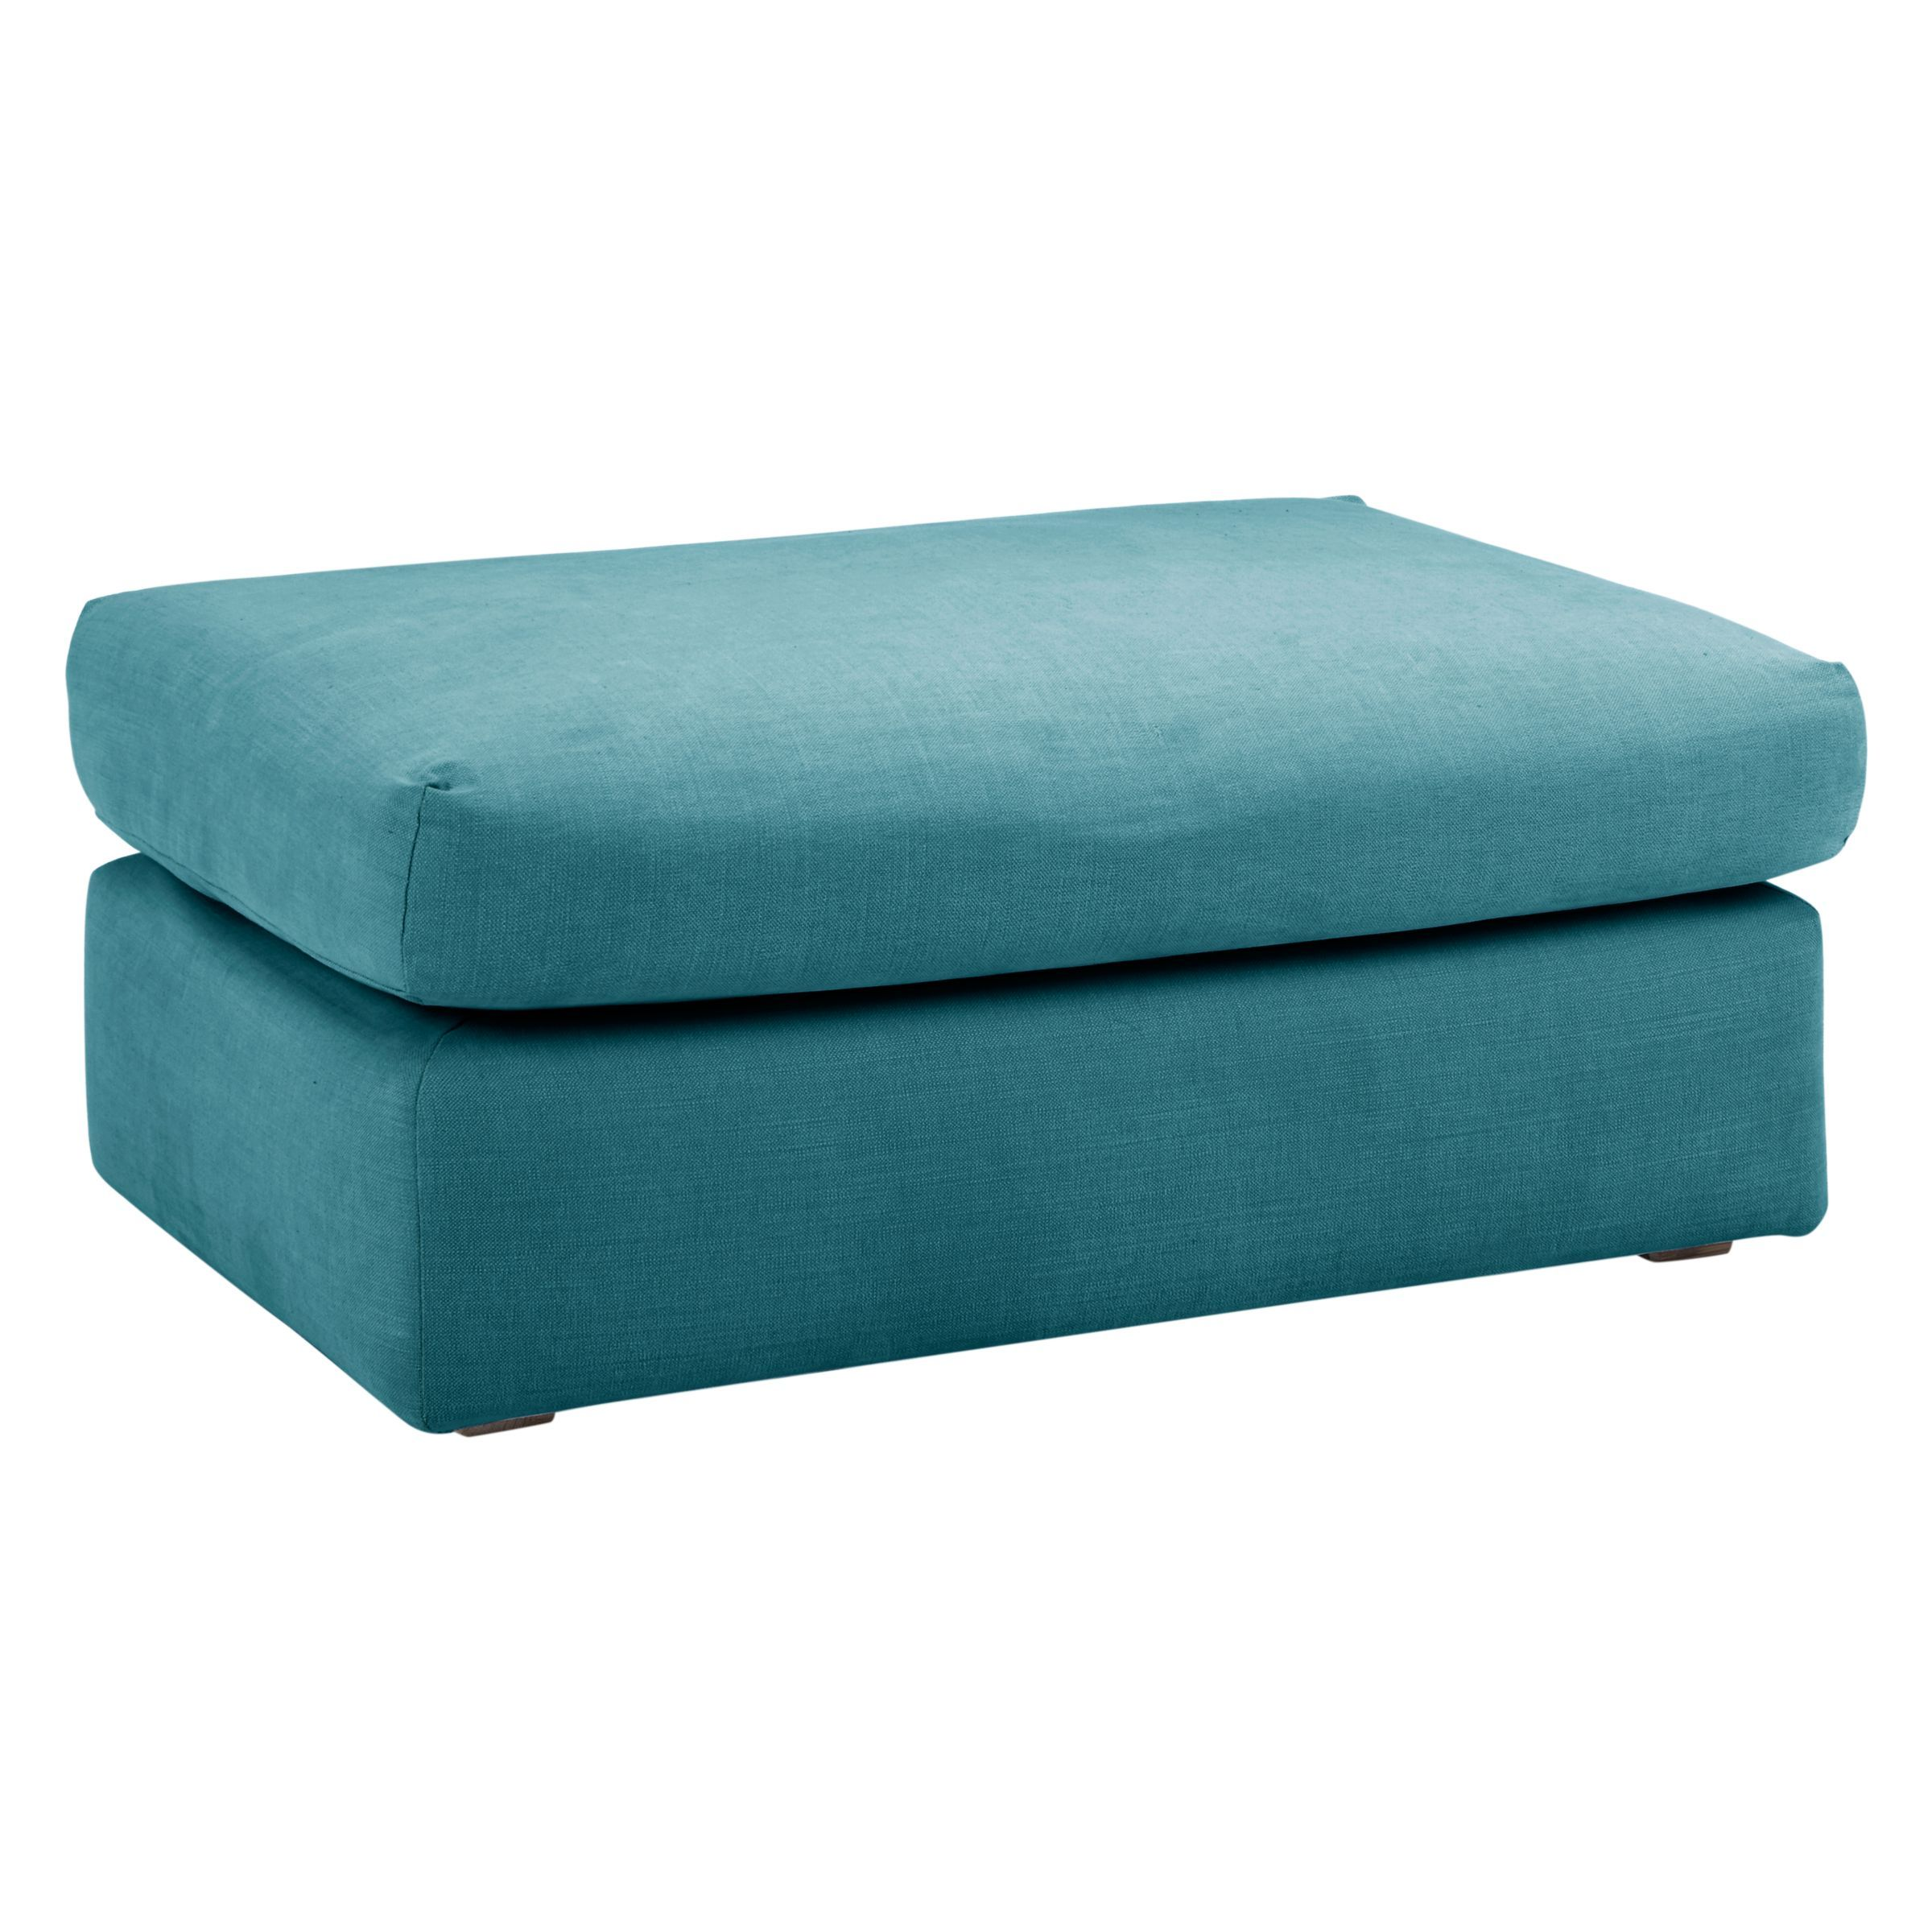 Floppy Jo Footstool By Loaf At John Lewis John Lewis Weathered